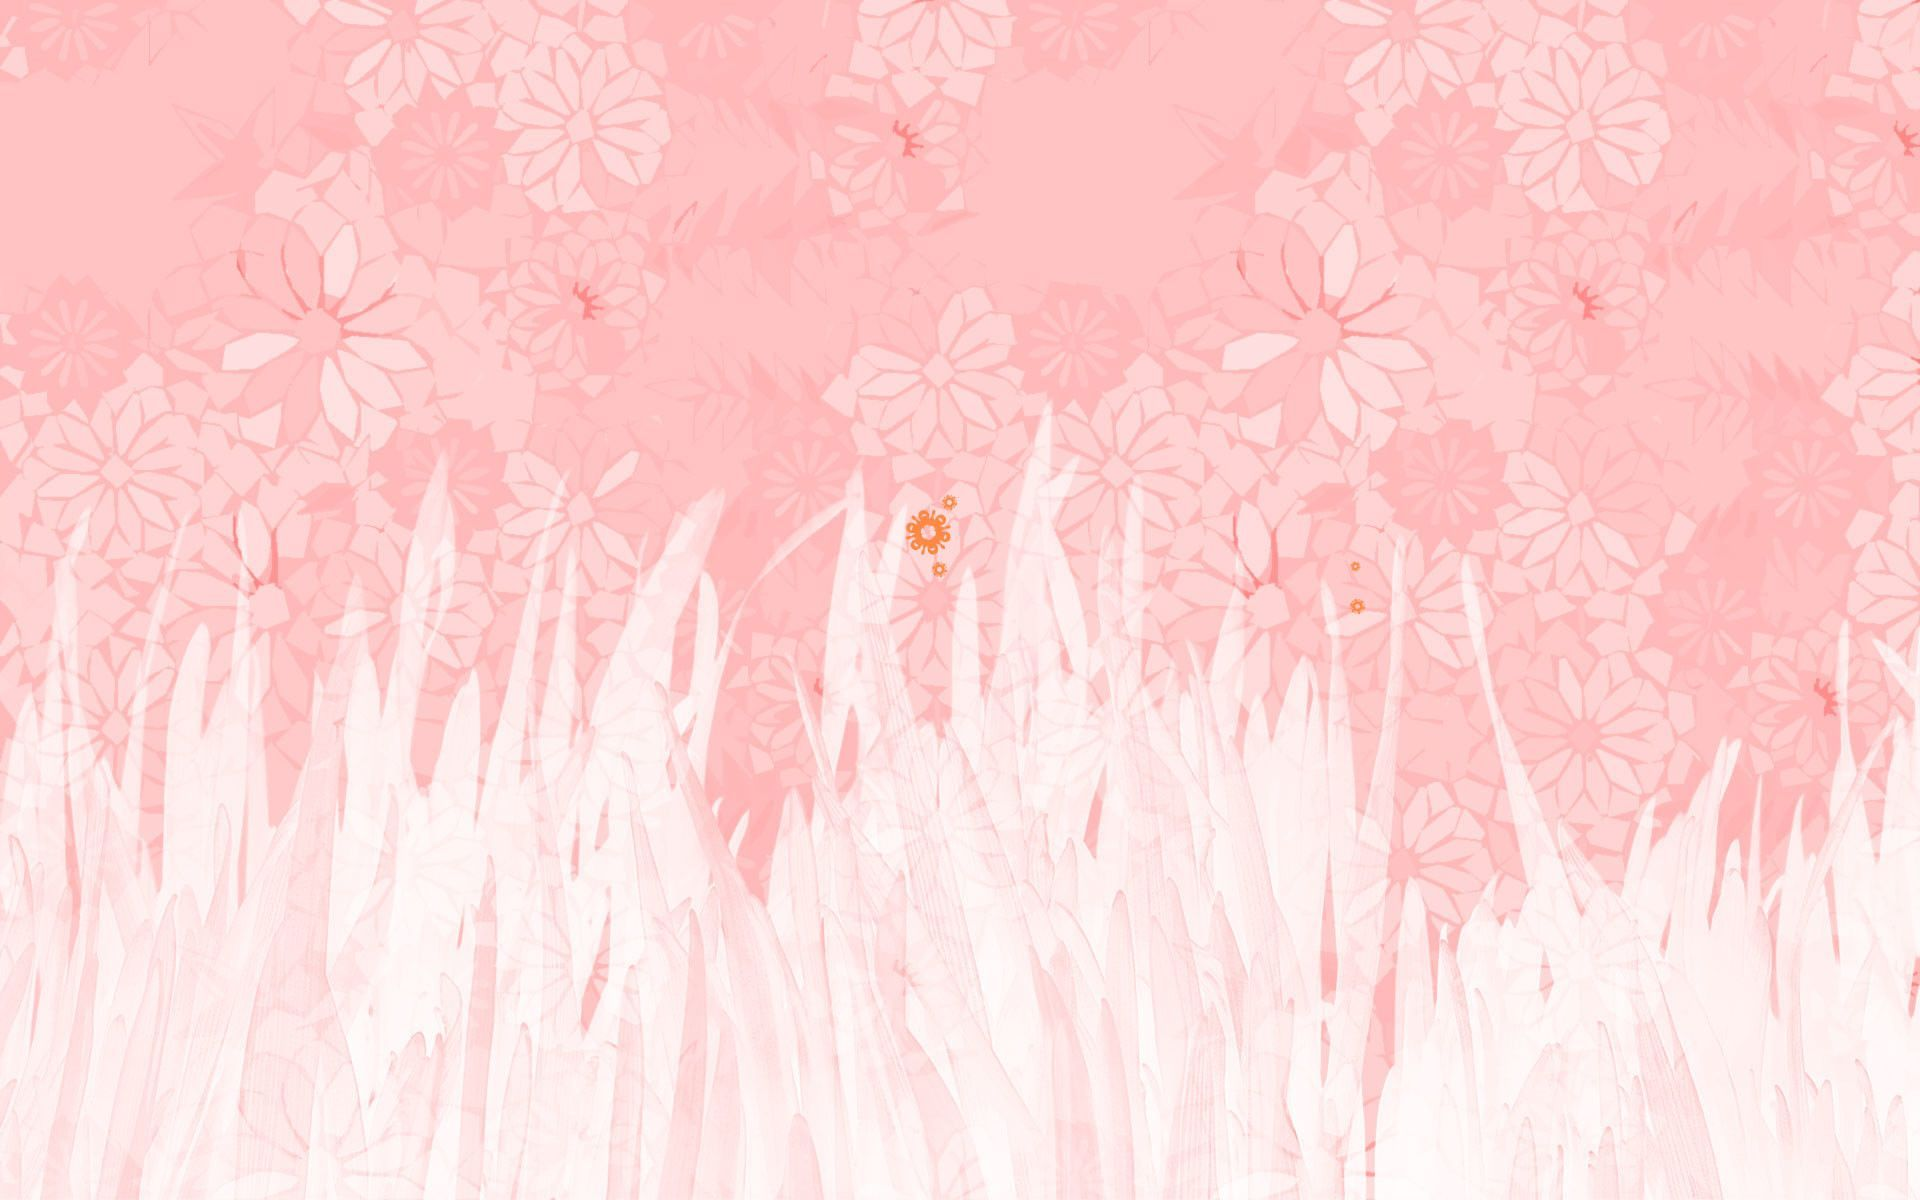 Pastel Pink Aesthetic Pc Wallpapers On Wallpaperdog Pink Wallpaper Pc Pastel Pink Wallpaper Aesthetic Pastel Wallpaper